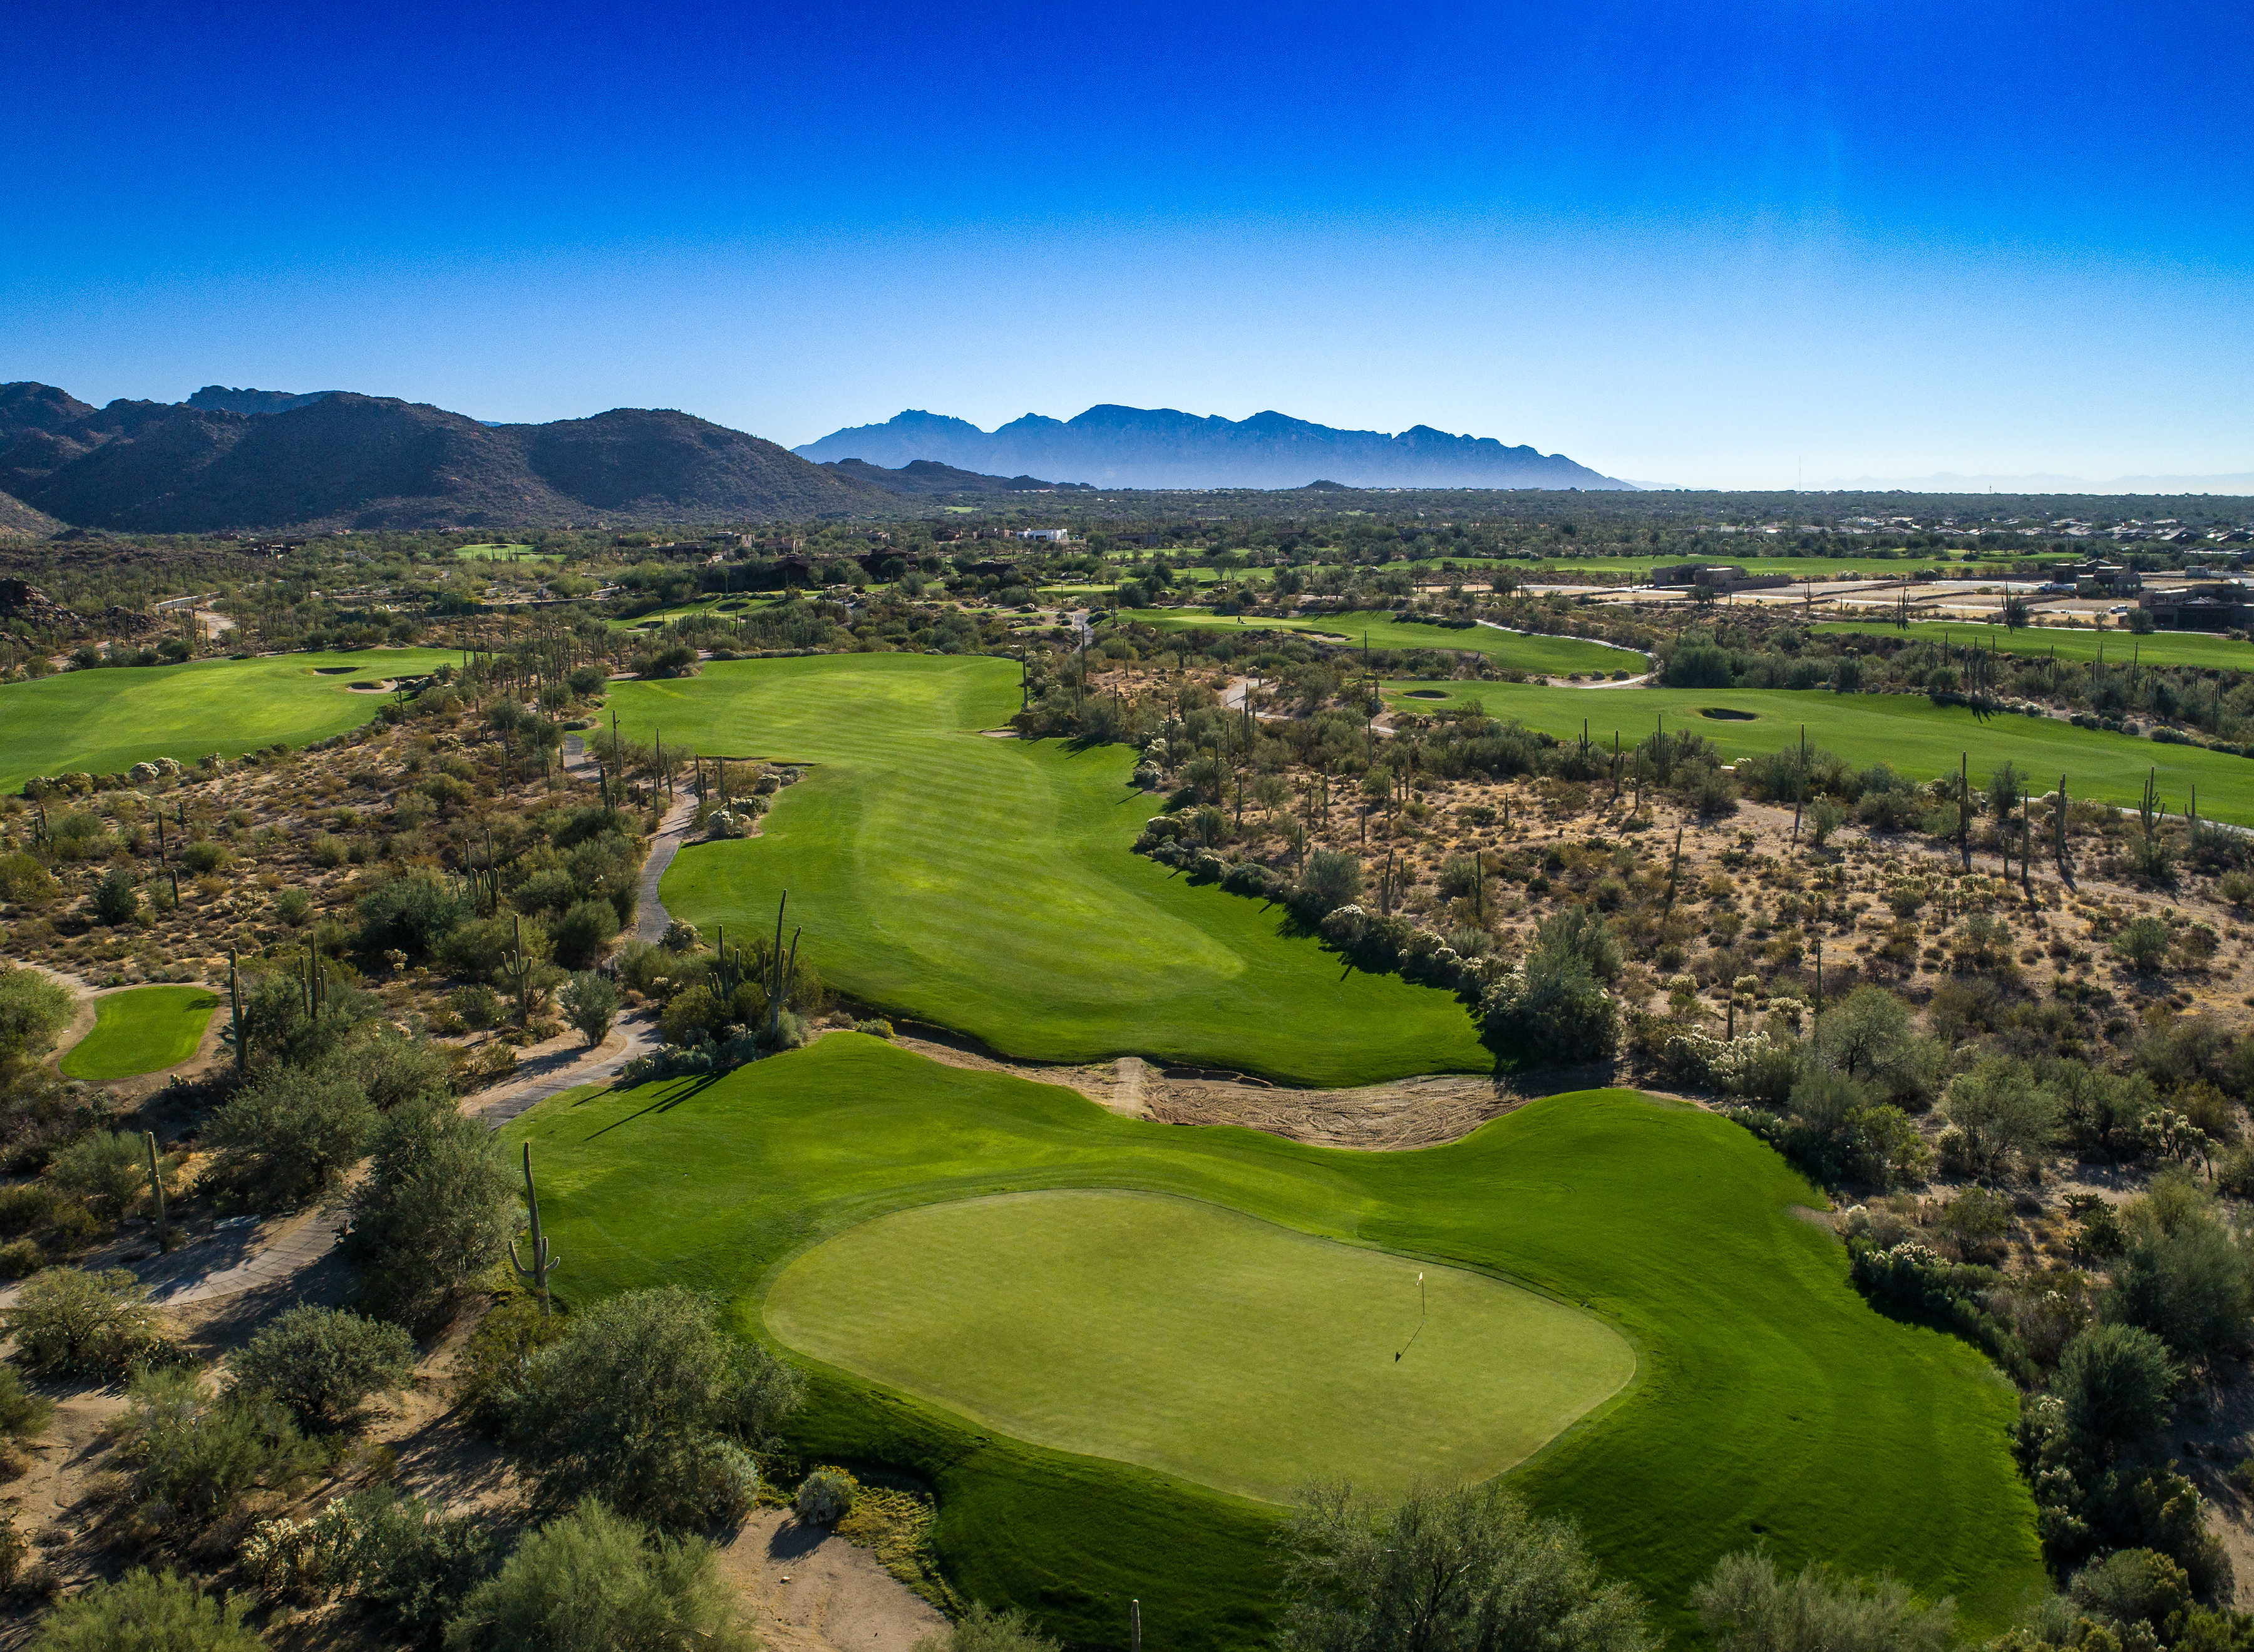 The Tortilia course features lush fairways with views of the mountains in Marana Arizona